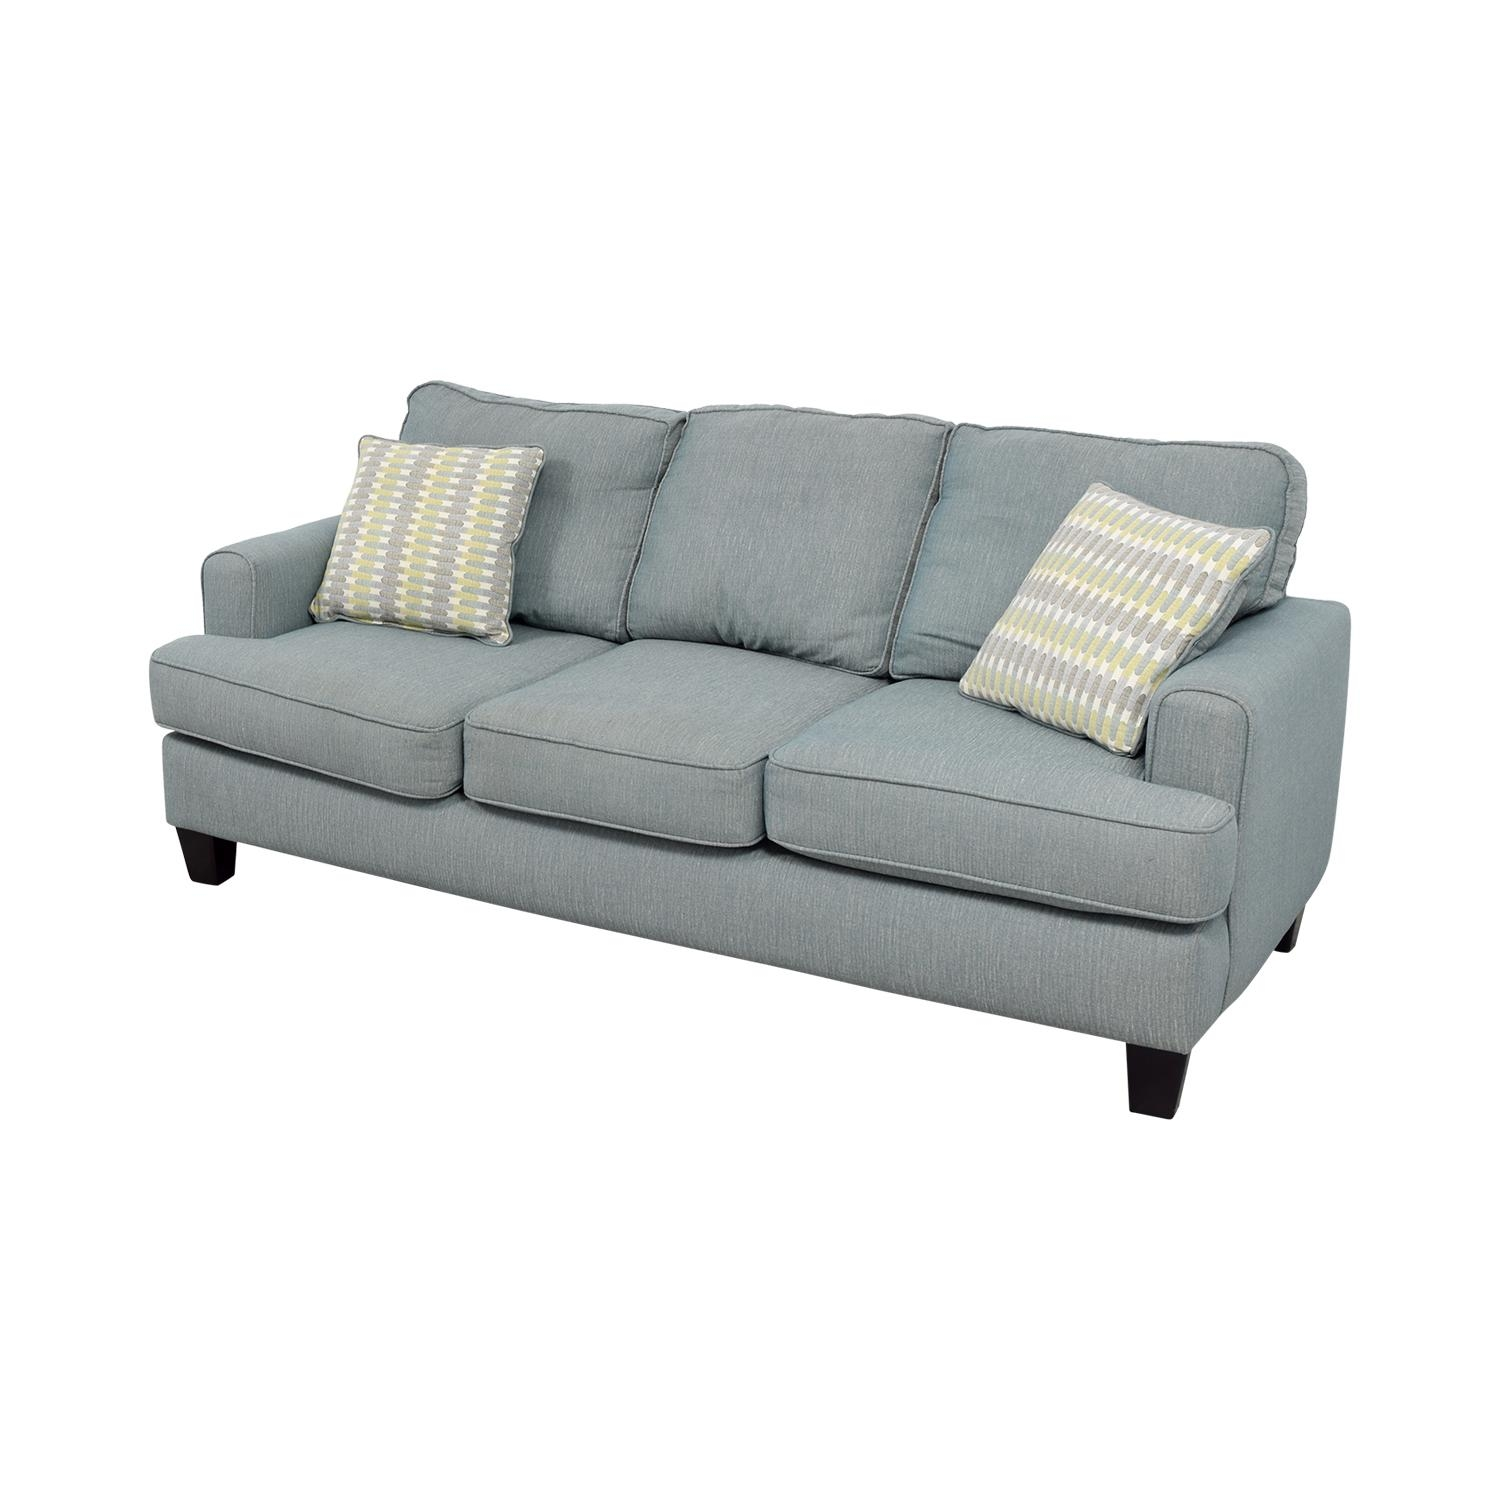 34% Off - Raymour And Flanigan Raymour And Flanigan Willoughby throughout 3 Seater Sofas For Sale